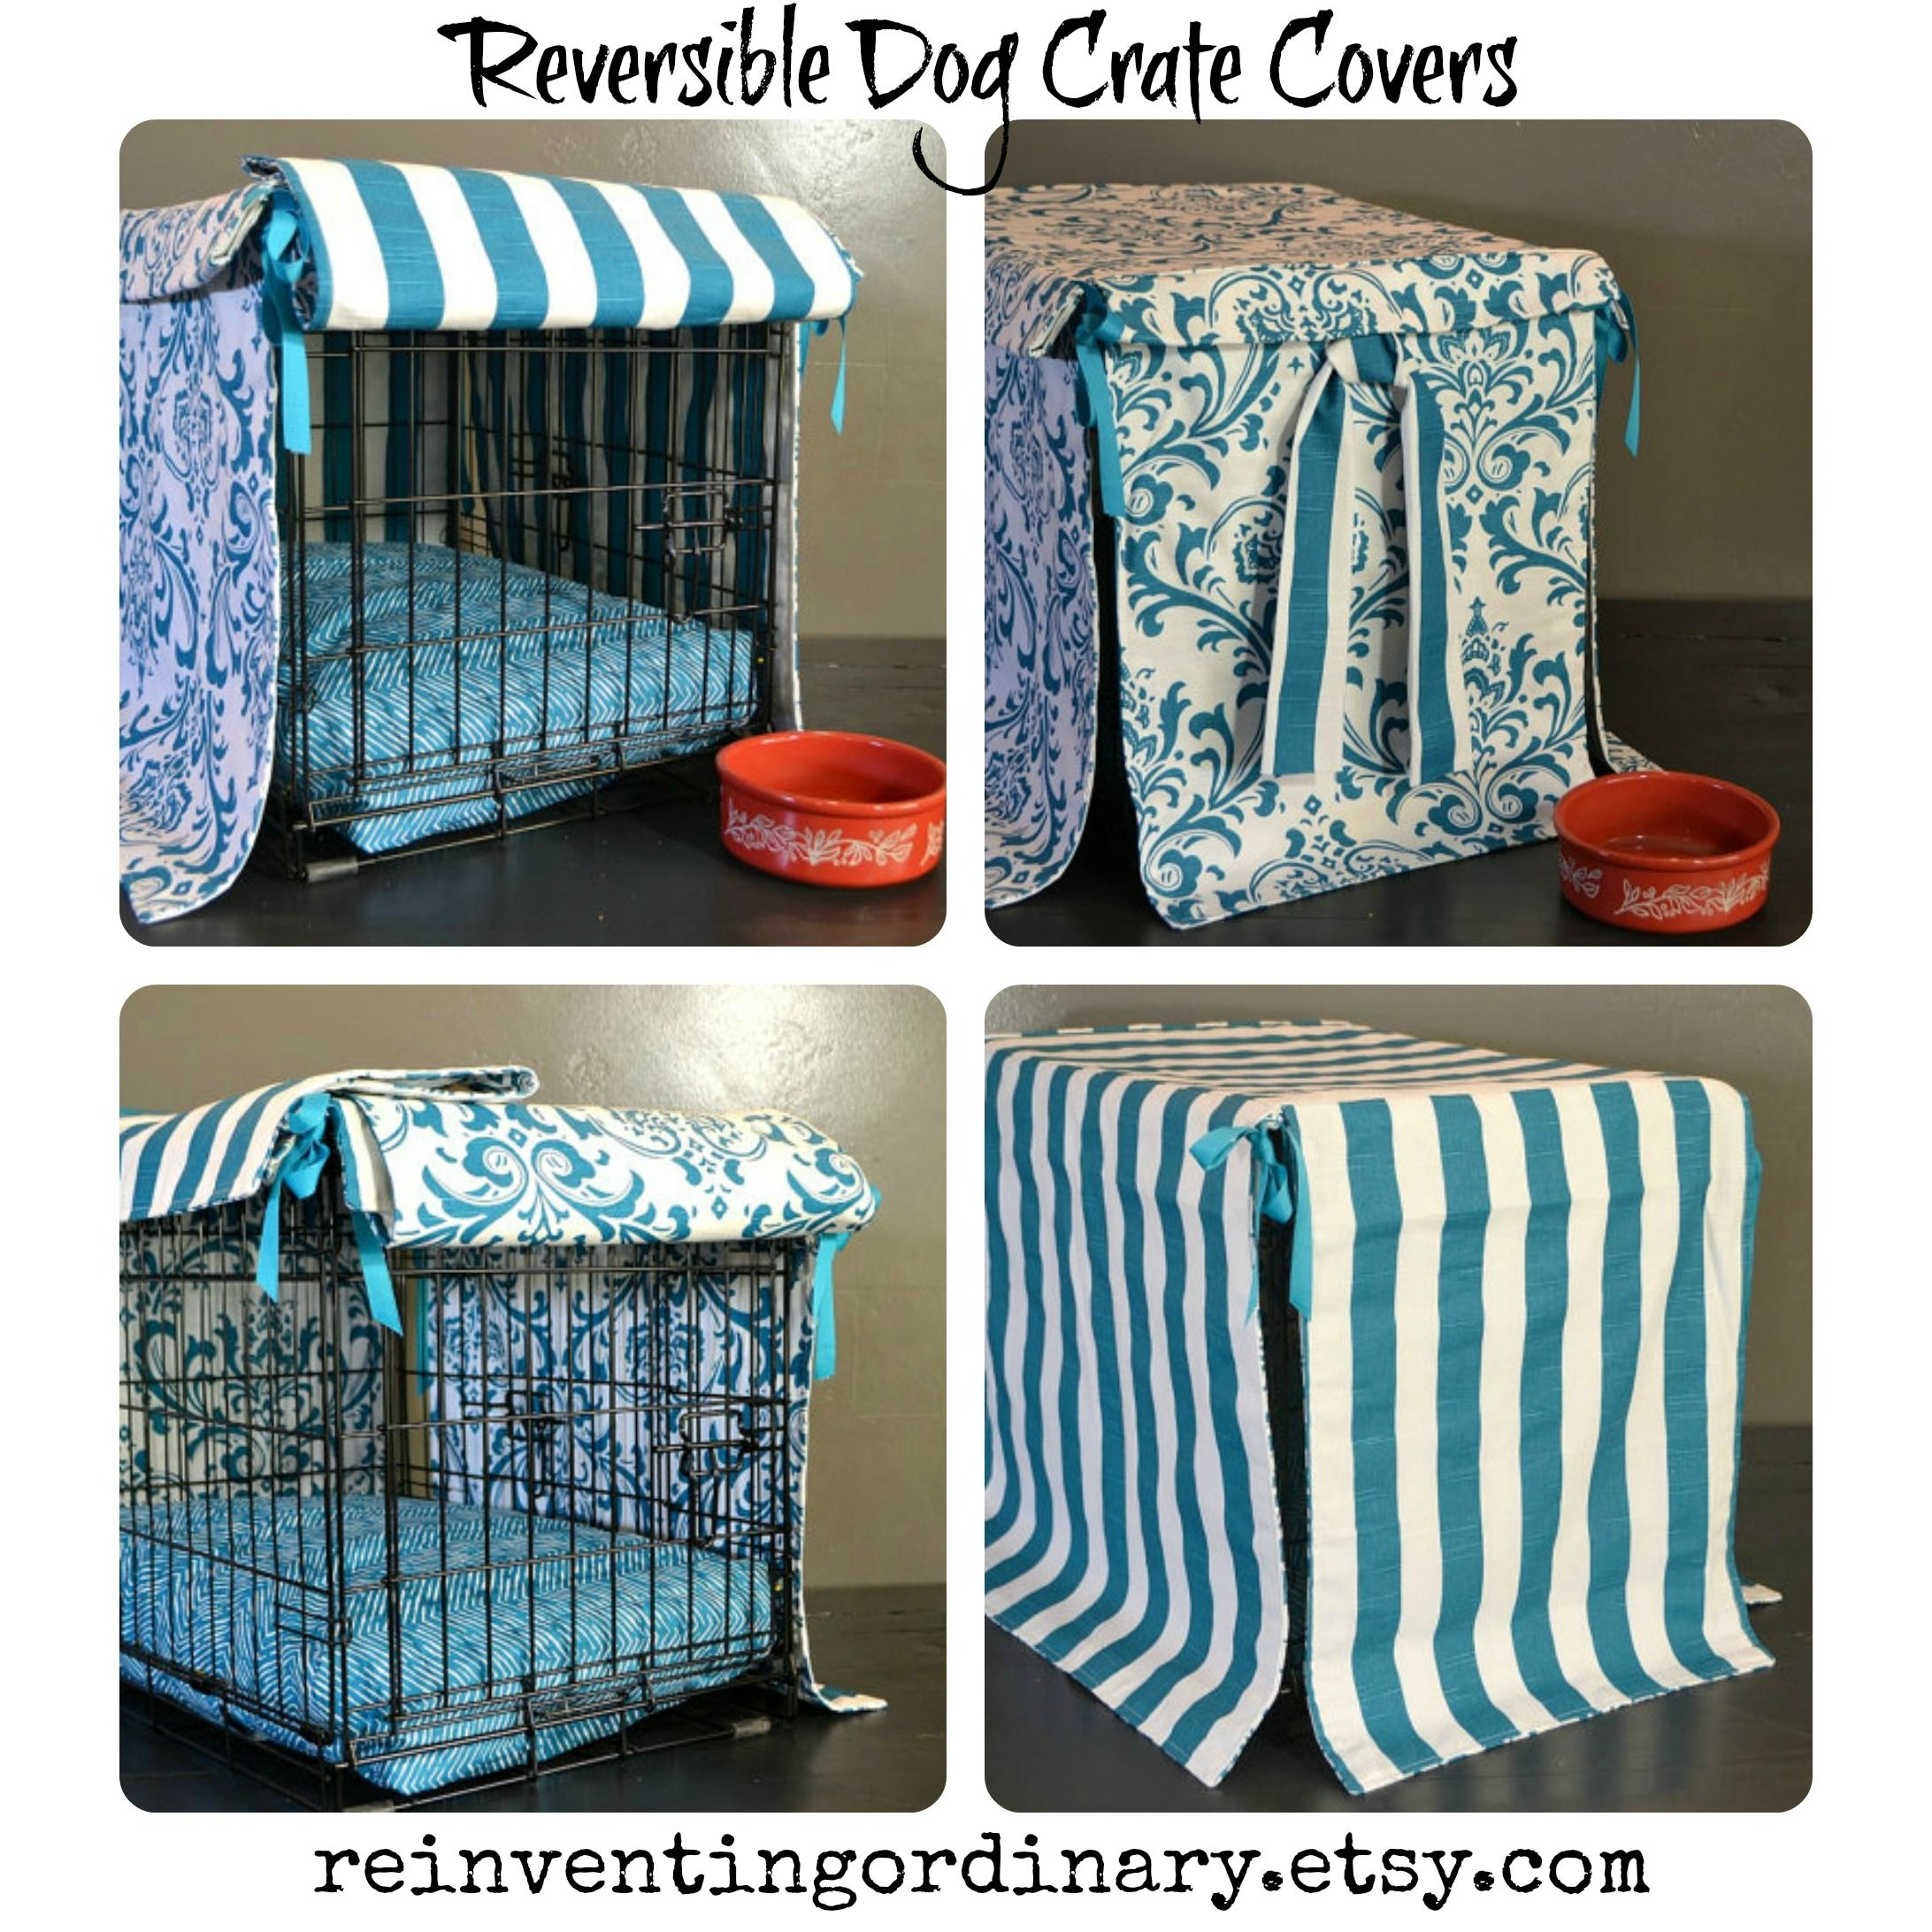 Love these new reversible dog crate covers. www.reinventingordinary.com